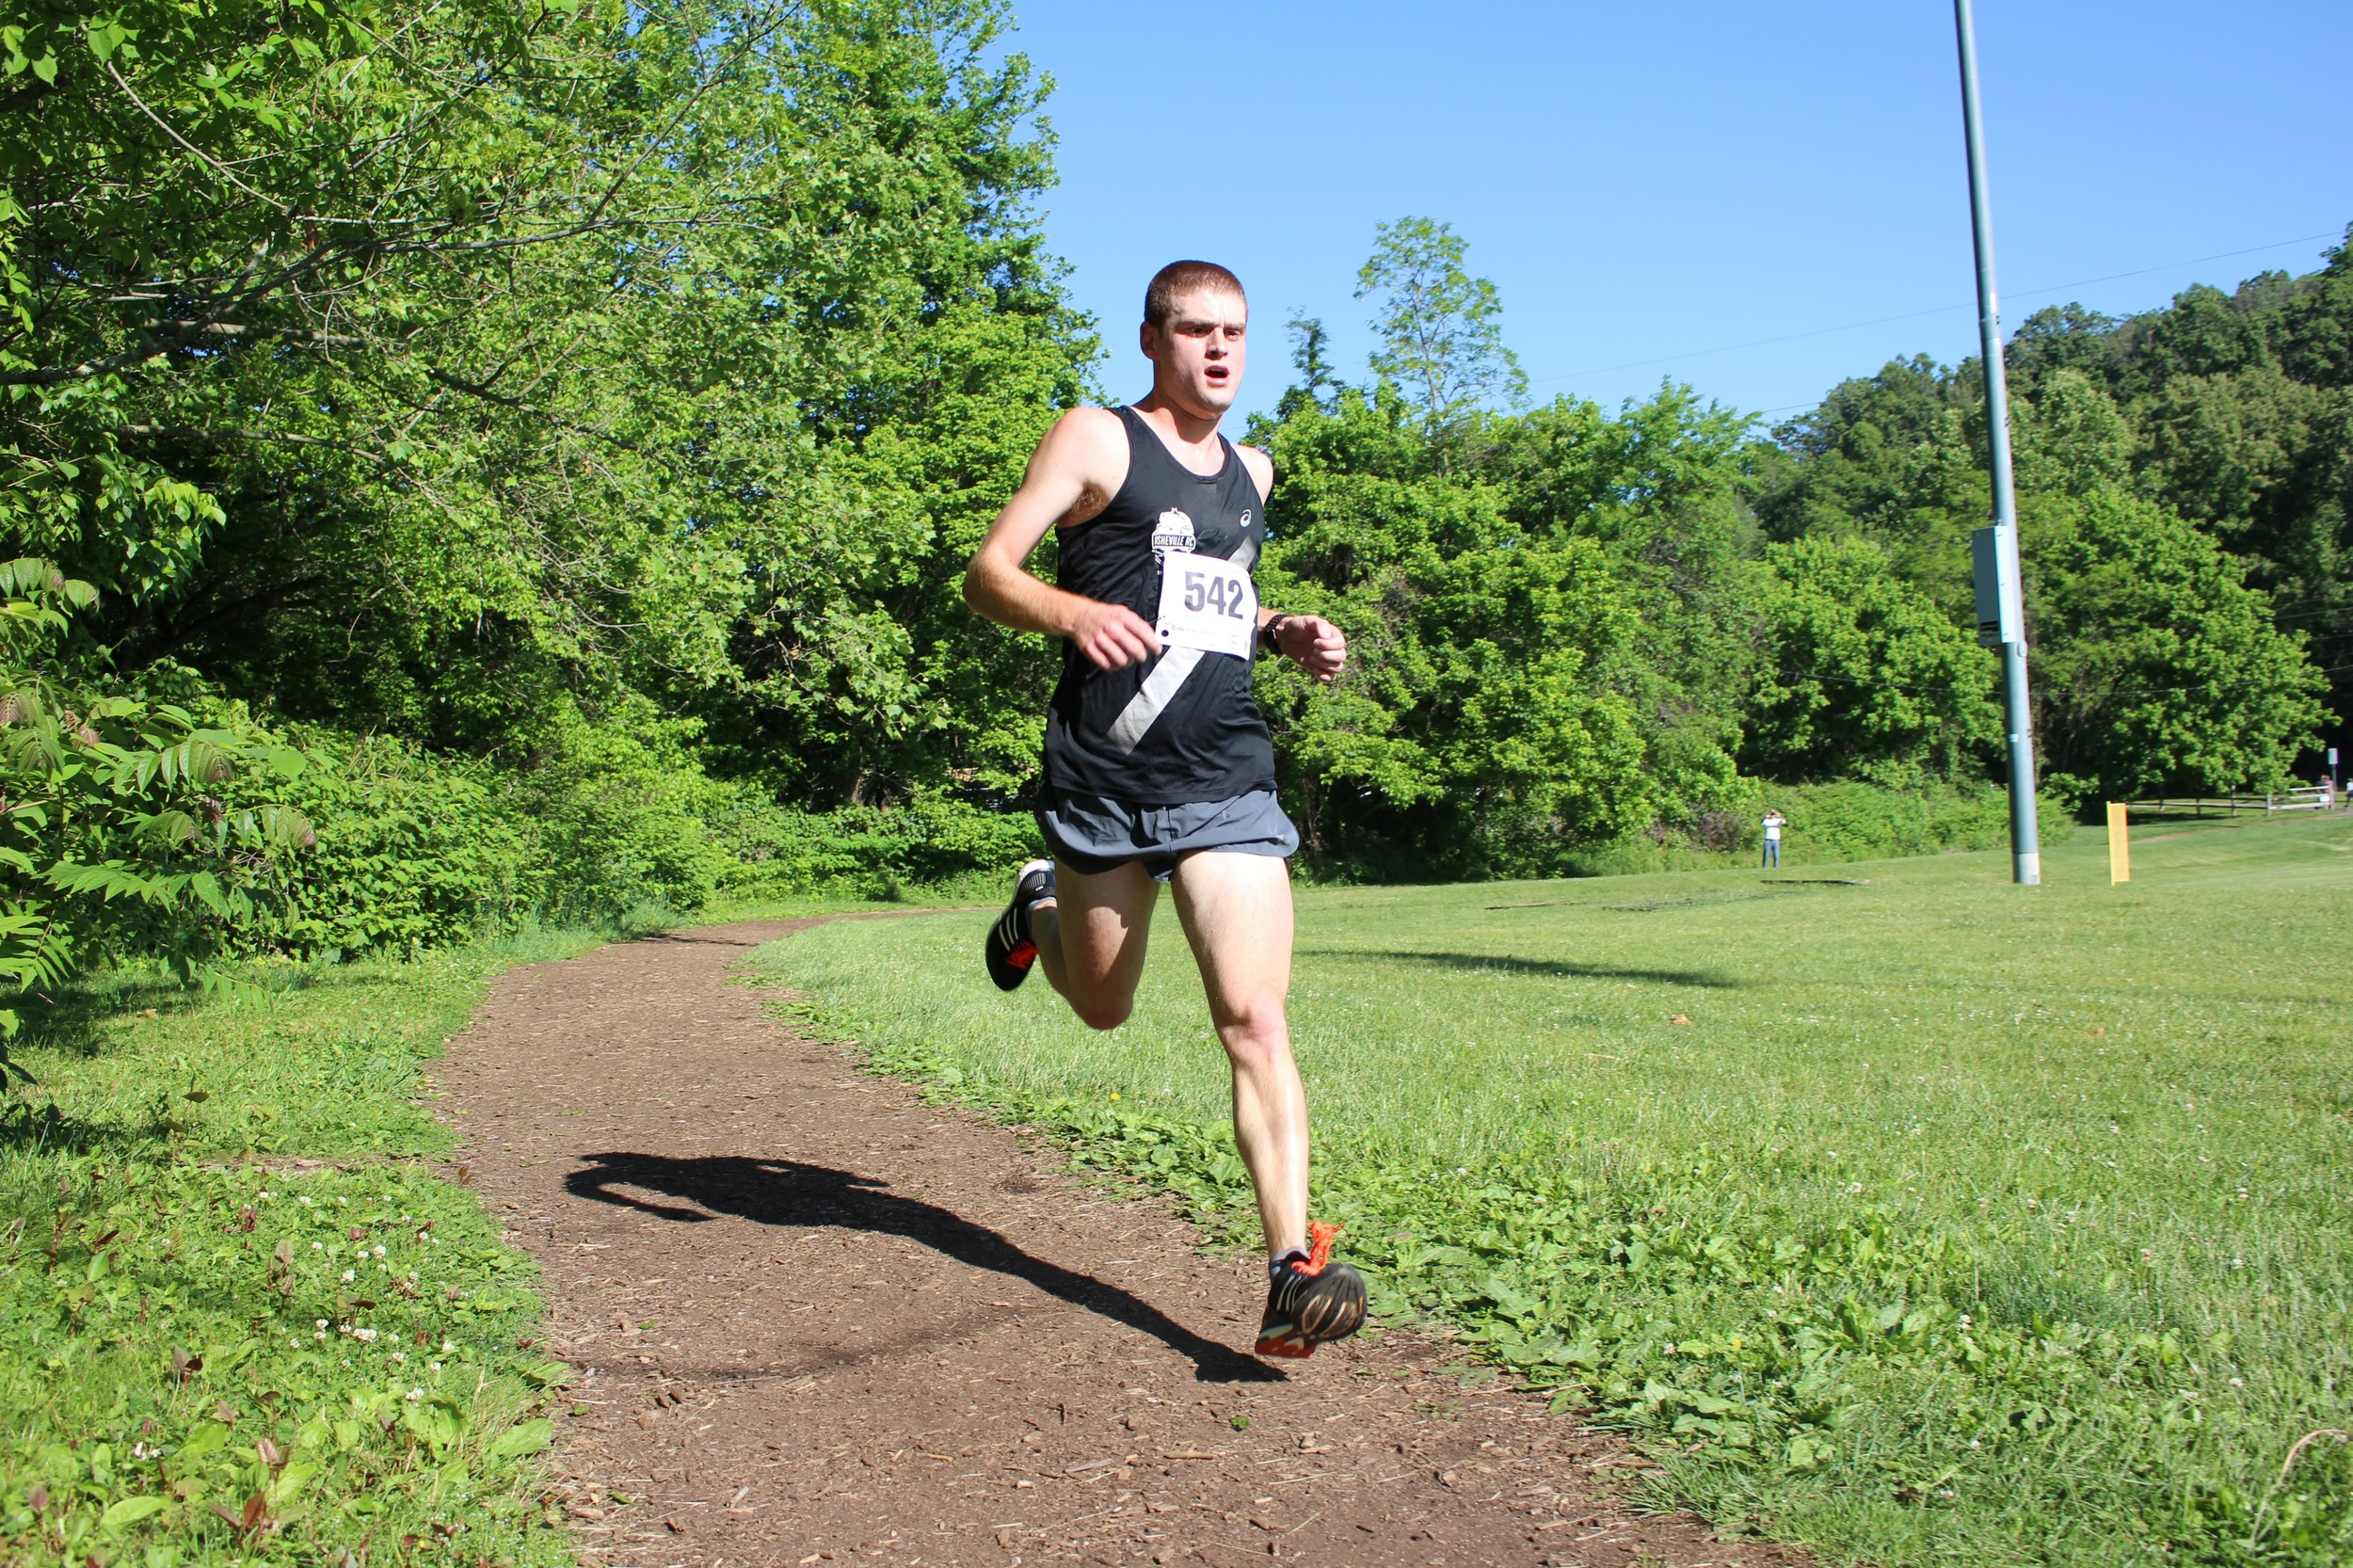 Brent Schouler kicking in to the finish